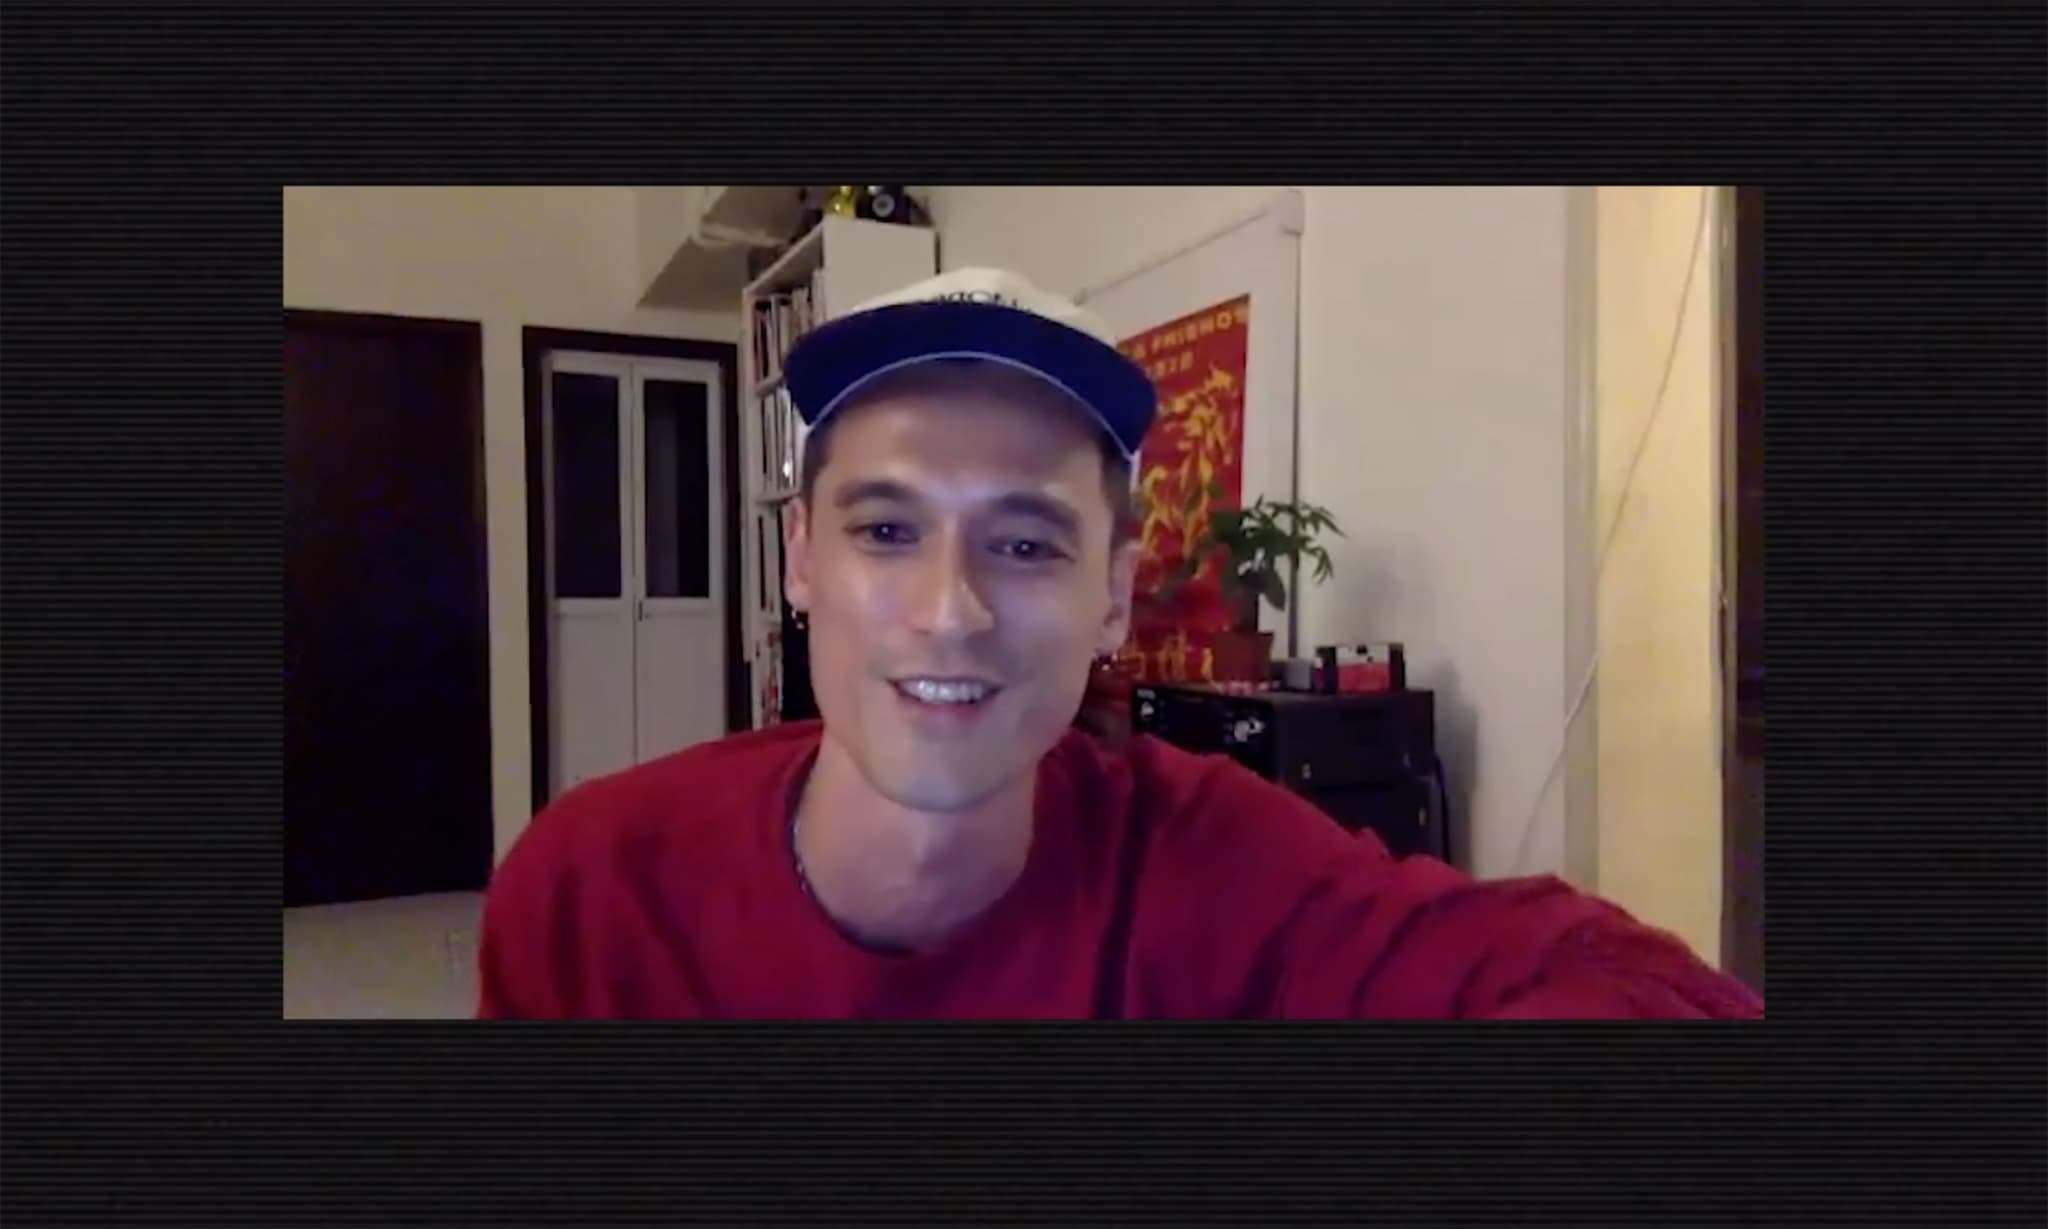 A man smiling during a video call.